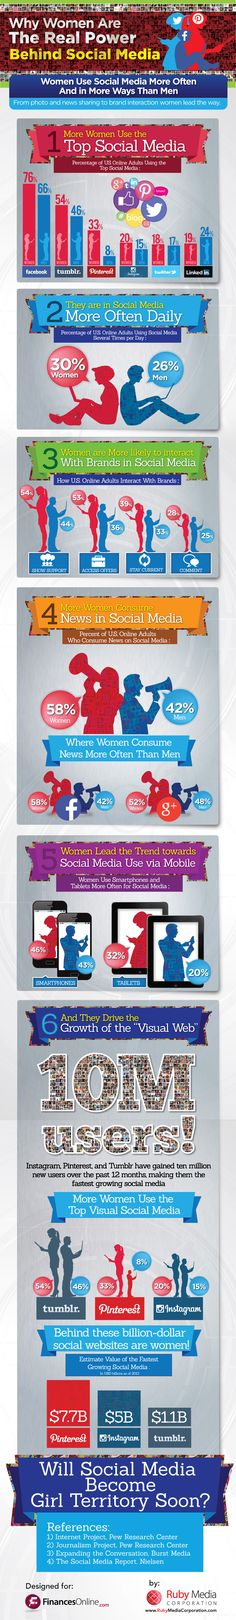 Women Dominate Every Social Media Network -- Except One (Infographic)